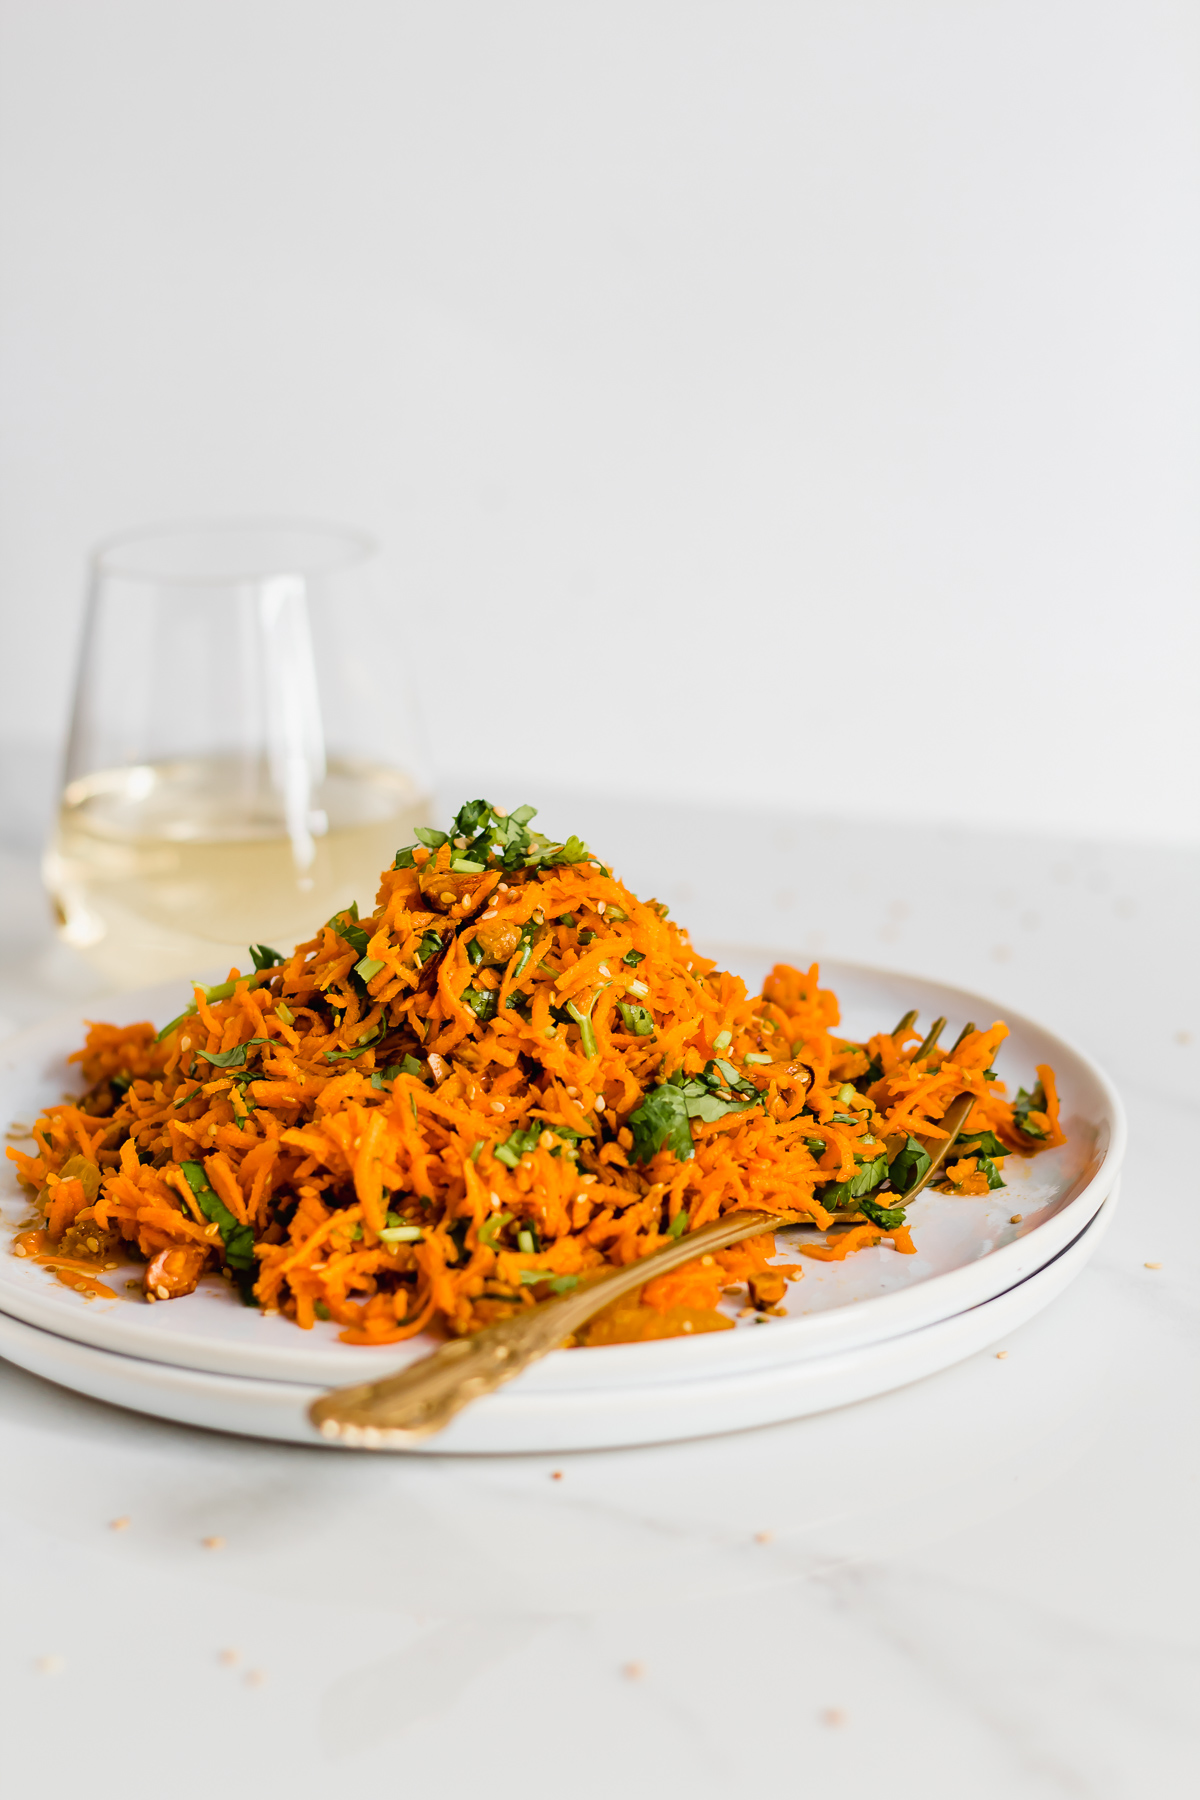 moroccan carrot salad in a plate